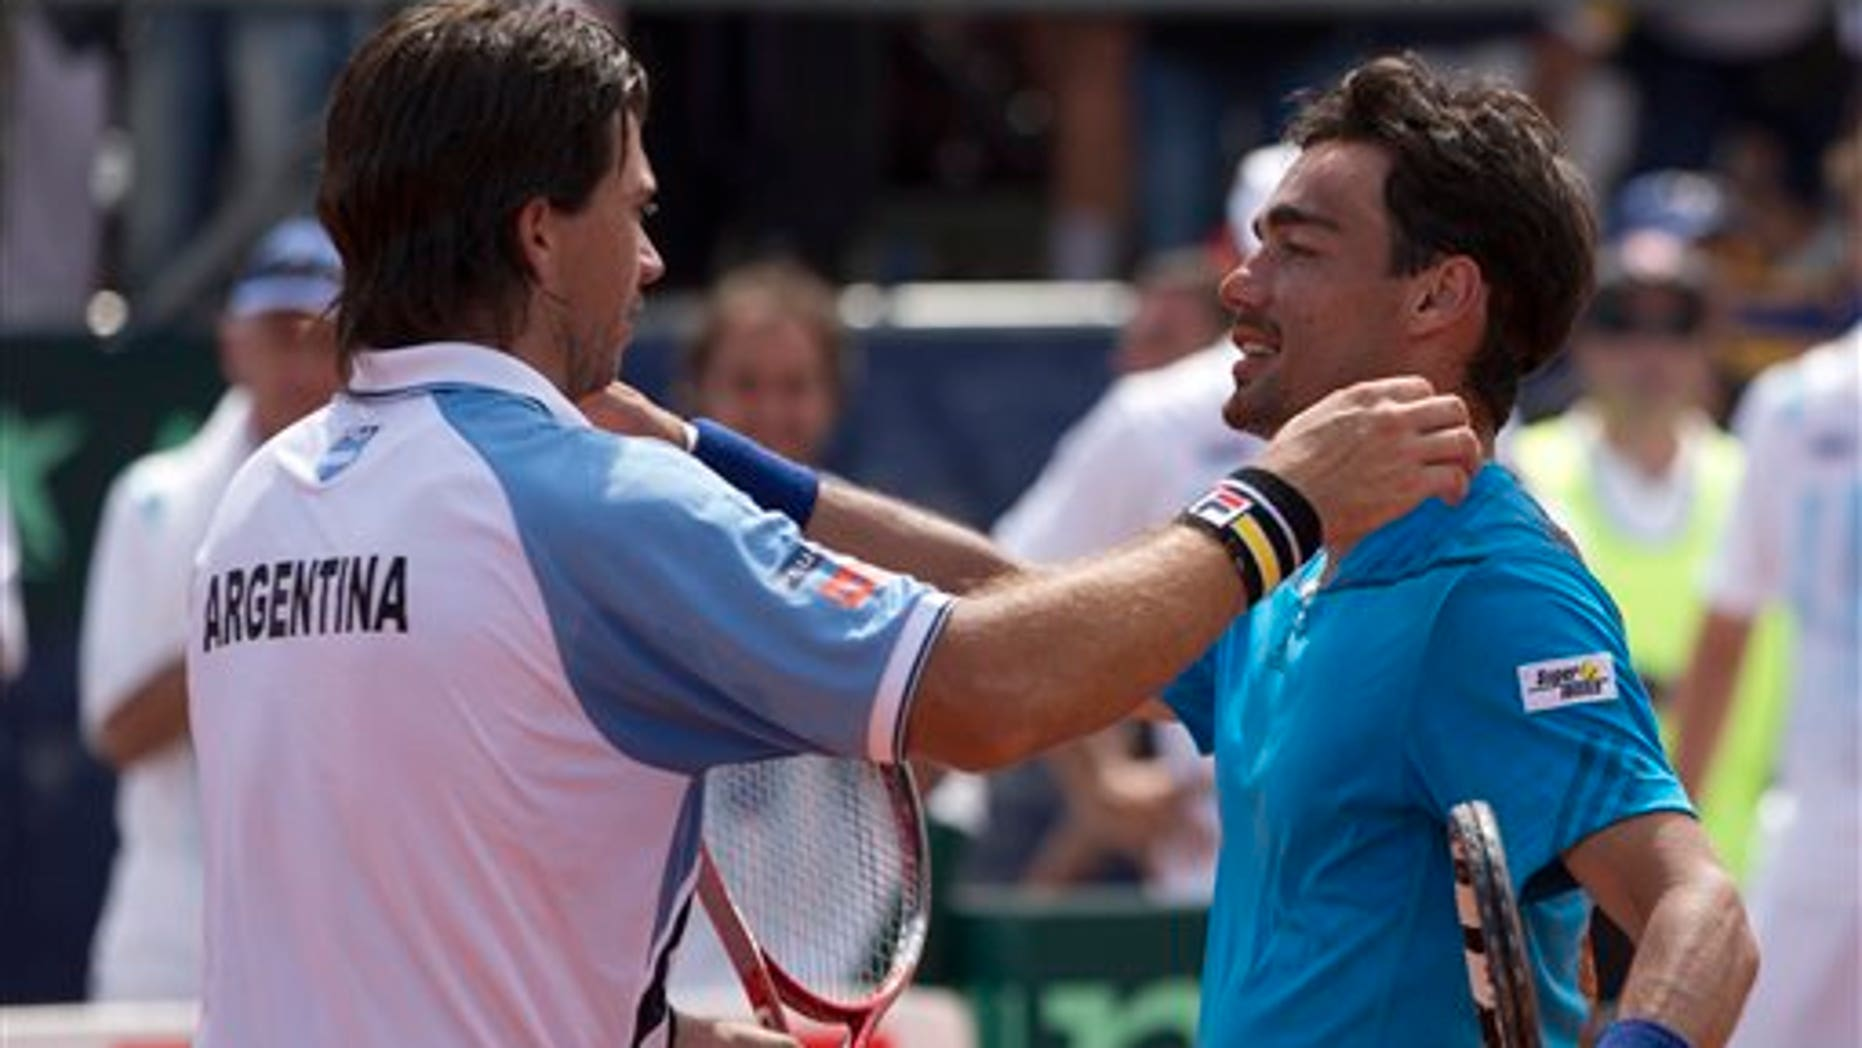 Argentina's Carlos Berlocq, left, and  Italy's Fabio Fognini embrace at the end of their Davis Cup singles match, in Mar del Plata, Argentina, Sunday, Feb. 2, 2014. Fognini defeated Berlocq 7-6, 4-6, 6-1, 6-4 to give Italy a 3-1 victory. (AP Photo/Eduardo Di Baia)